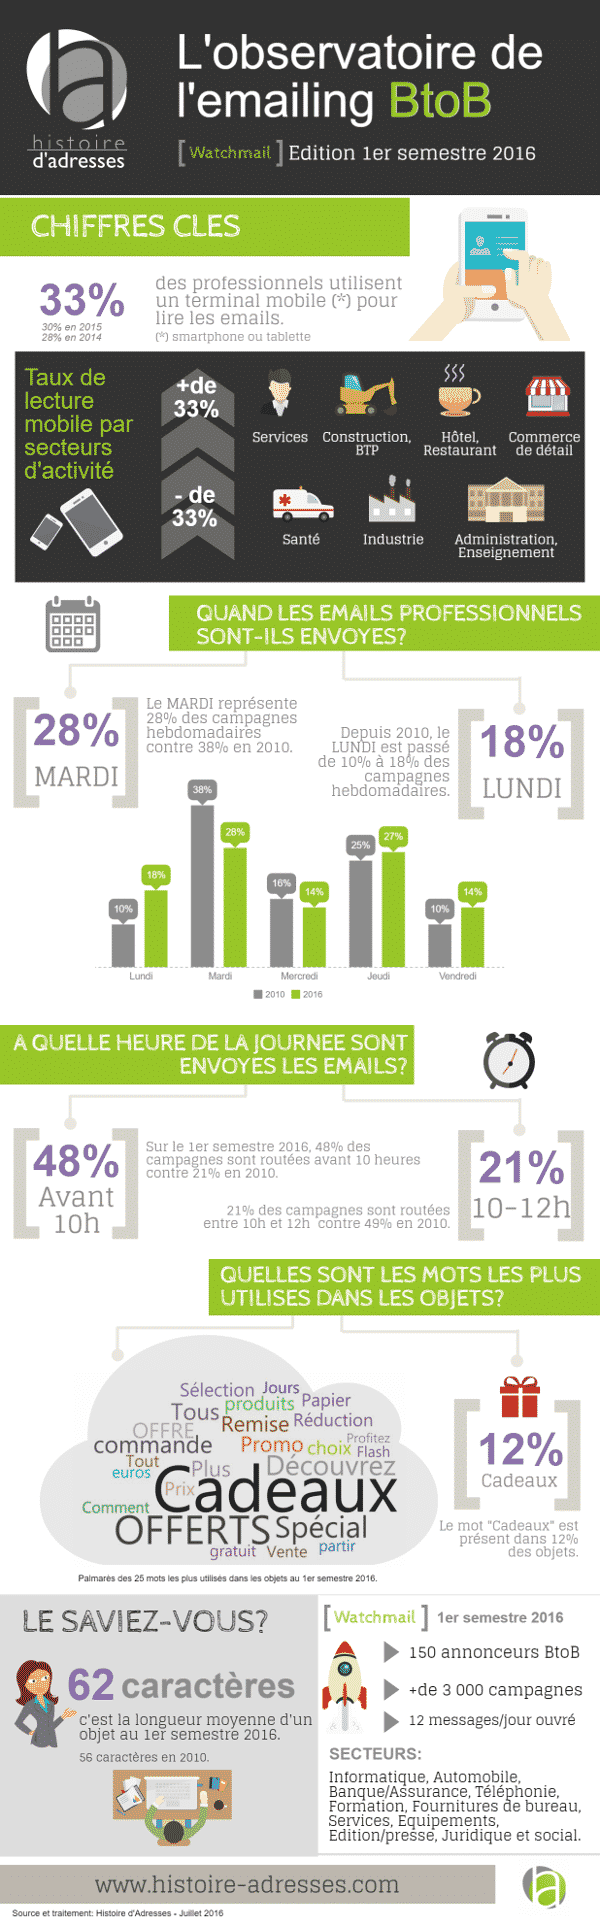 infographie_histoire-adresses_watchmail_s1-2016